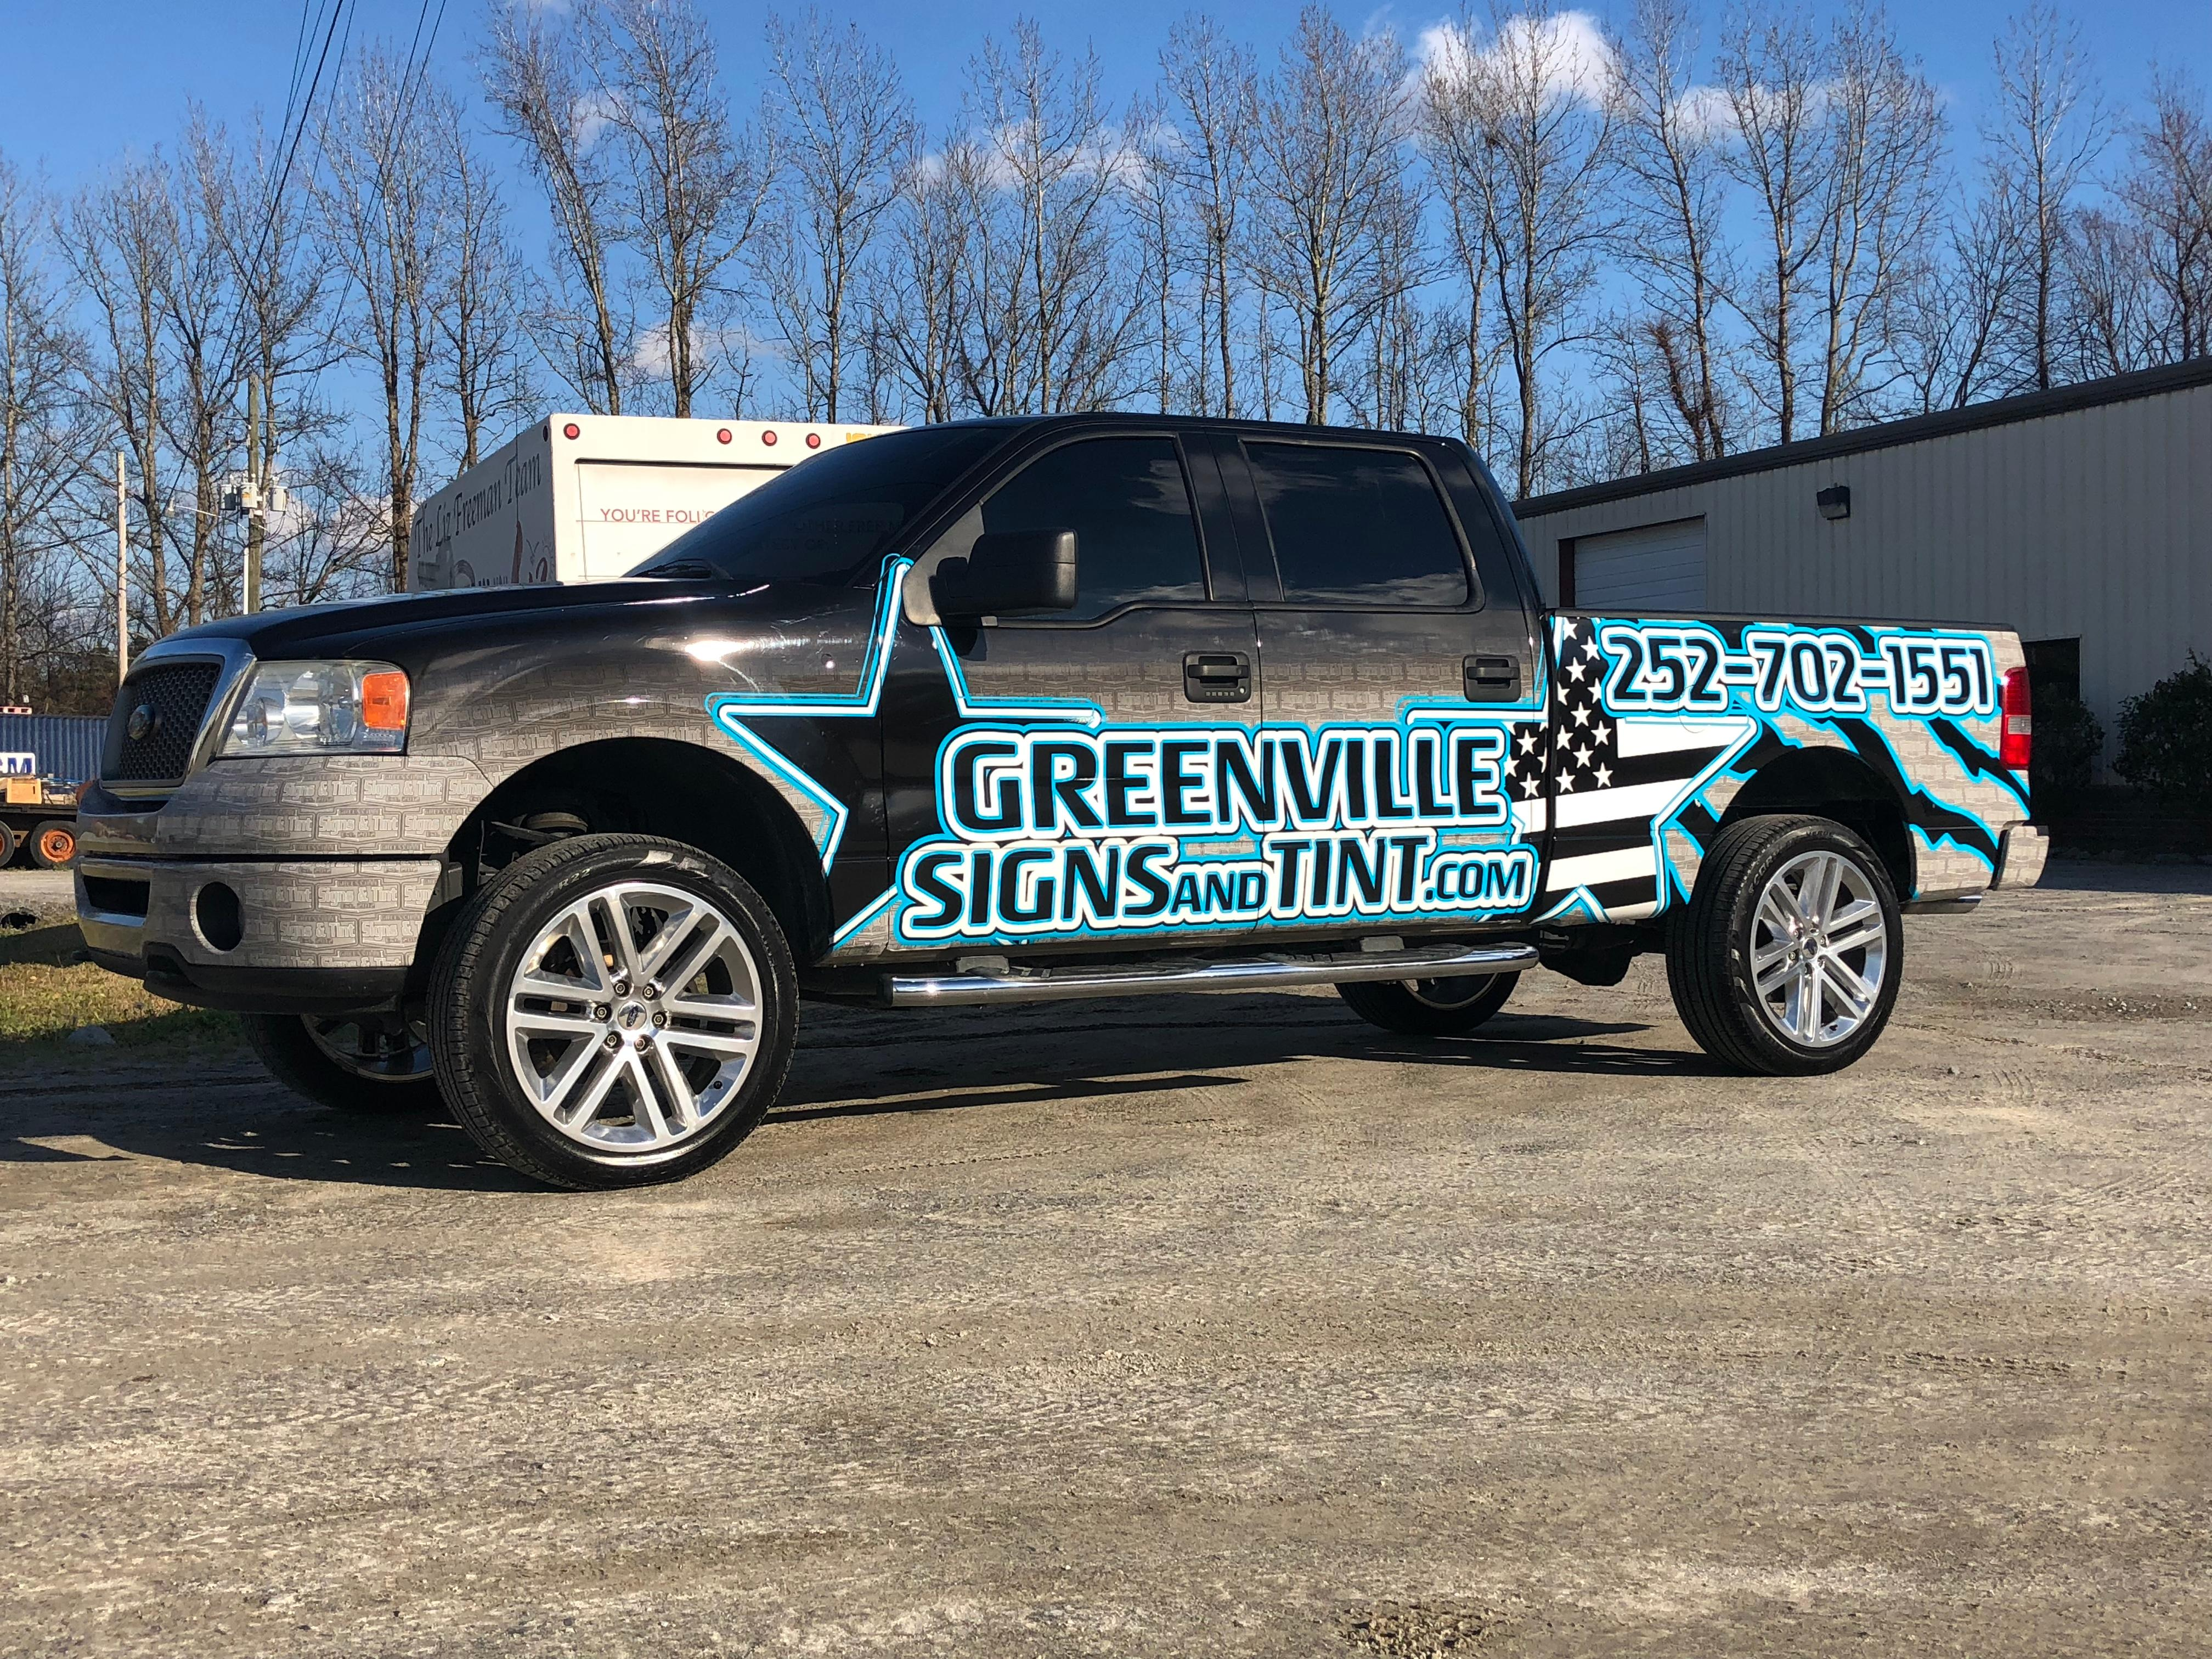 Greenville Signs & Tint image 2